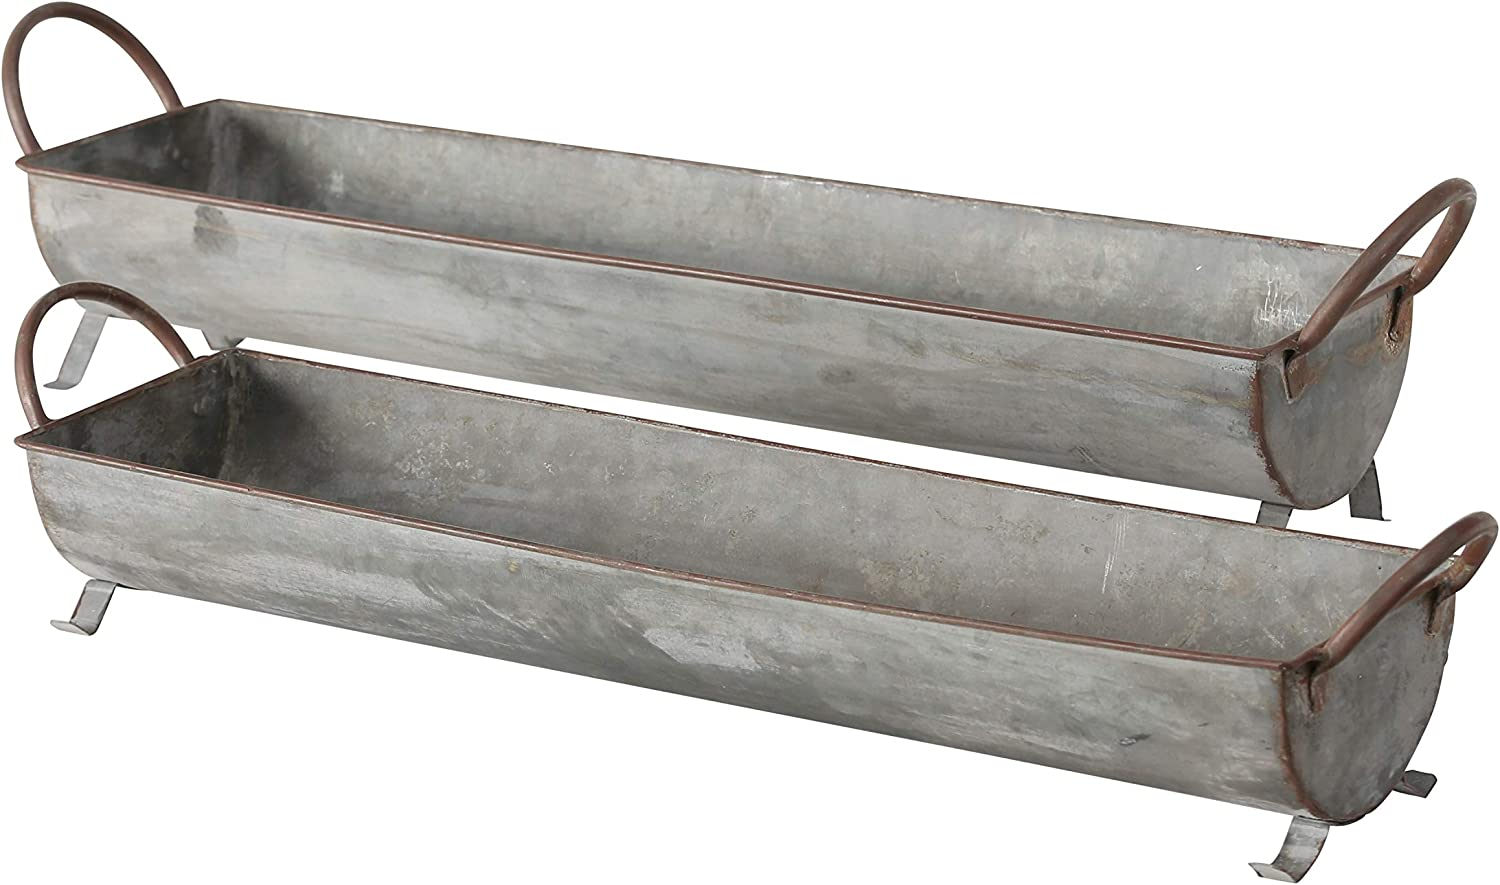 Amazon Com Whw Whole House Worlds Farmer S Market Galvanized Metal Basket Tray Planters Set Of 2 Long Trough Shaped Zinc 28 And 25 Inches For Container Gardens Kitchen Dining